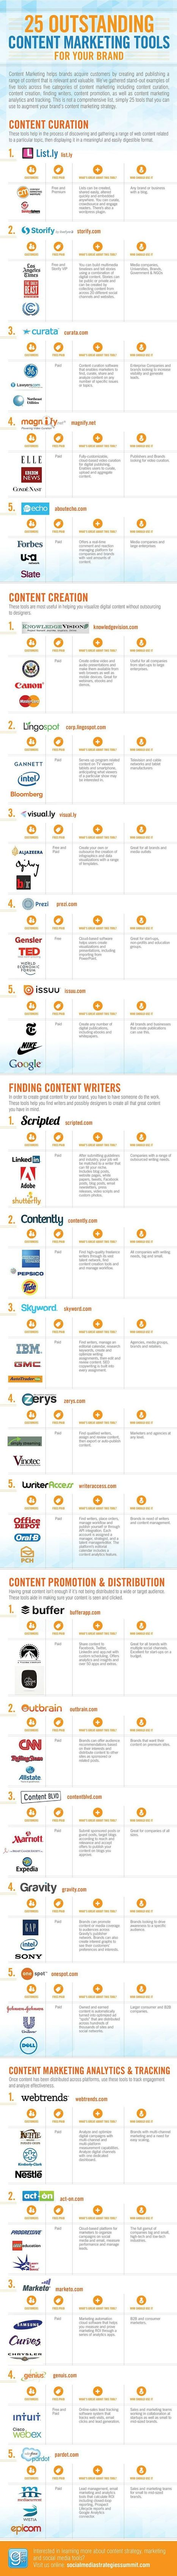 Content marketing minded   Content Marketing for B2B Tech:  Practical Tips and Best Practices   Scoop.it